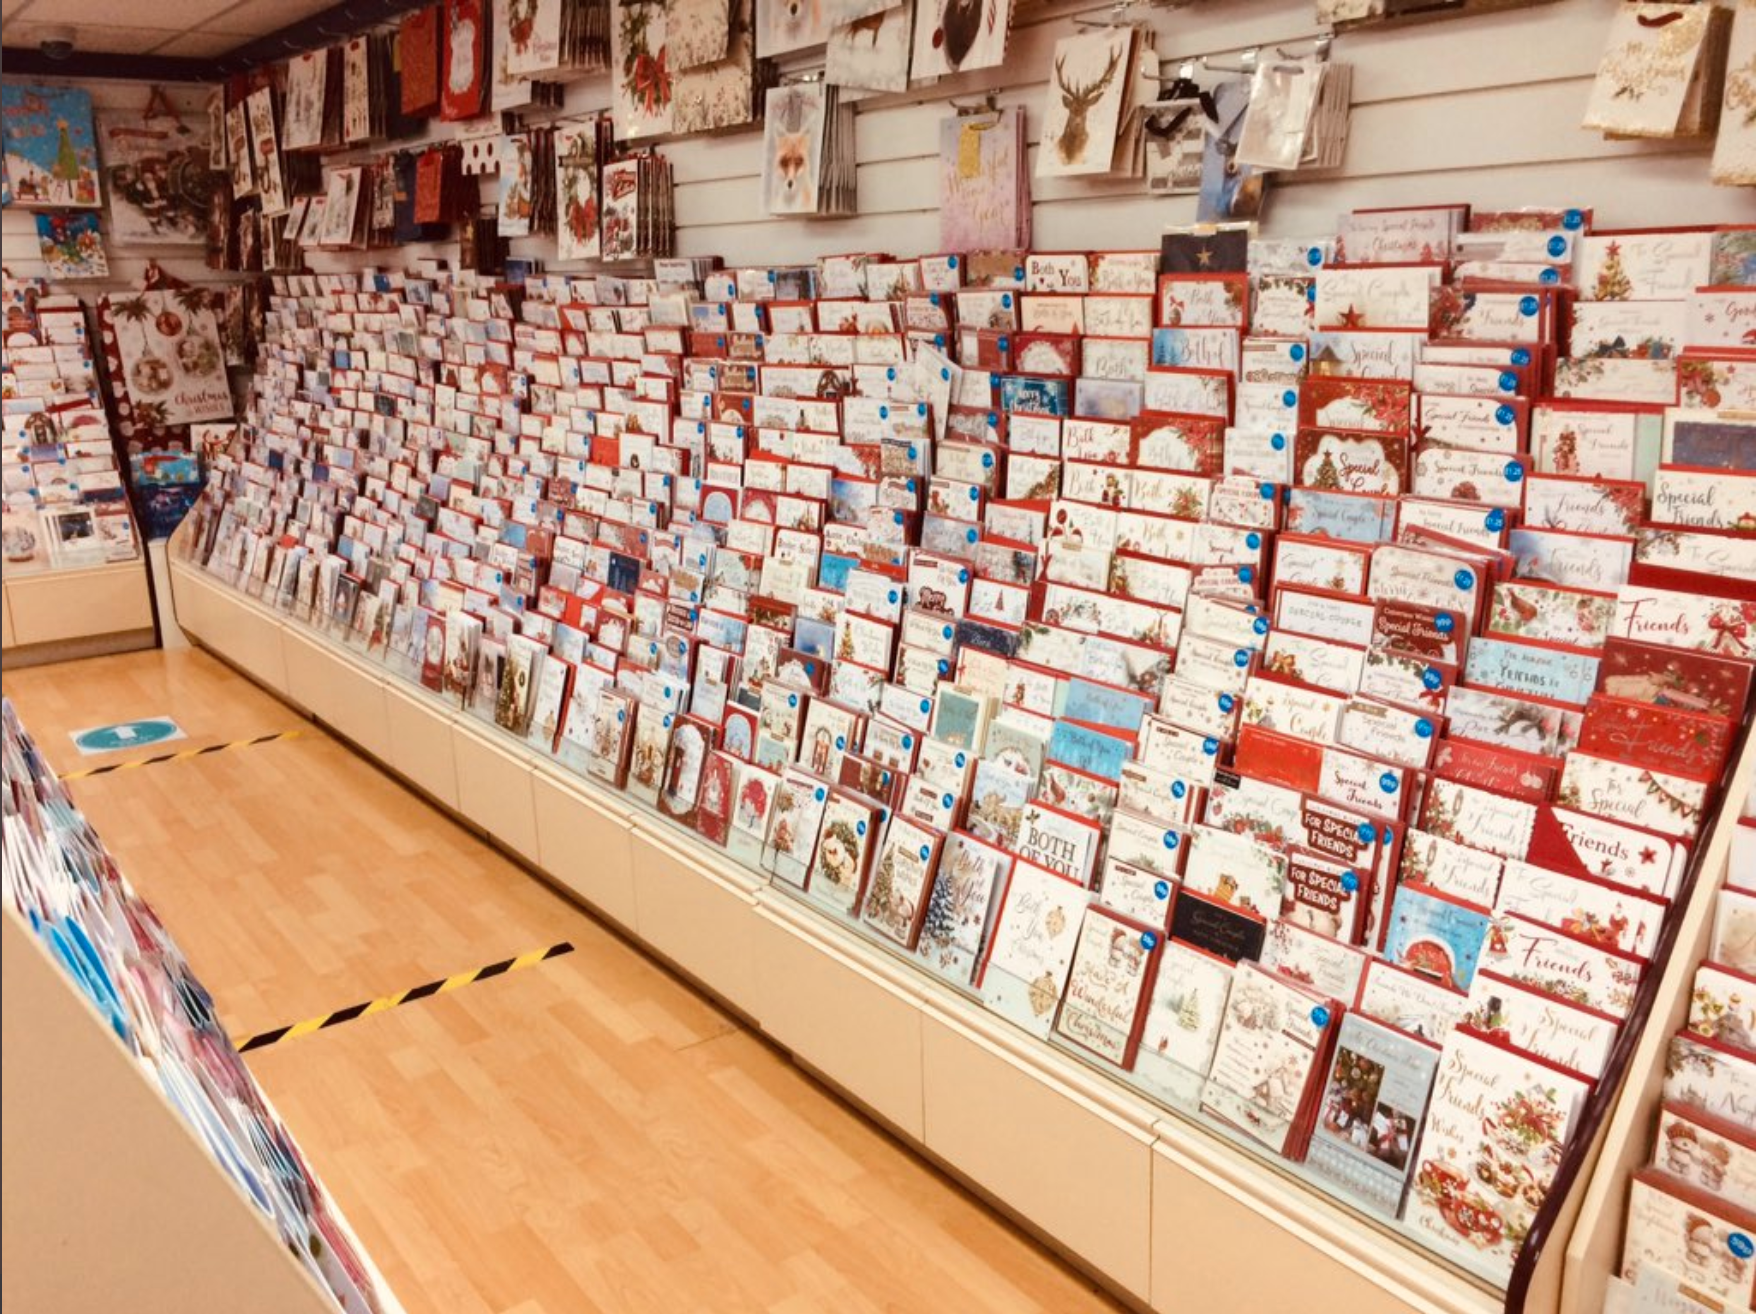 Above: The Christmas card display in Barton Shopping Centre, one of Cardgains' many independent retail members.